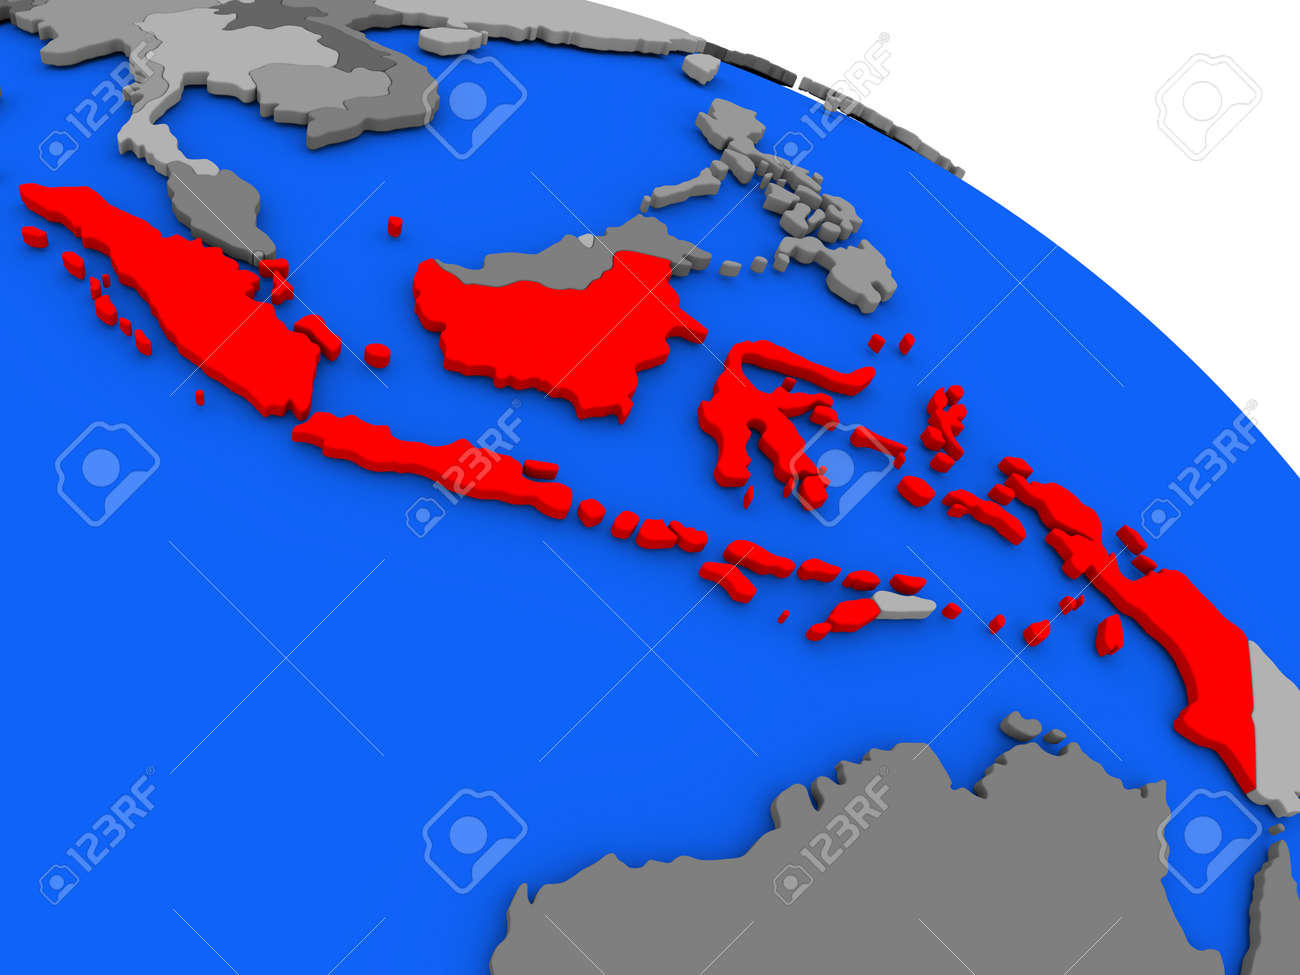 Map of indonesia highlighted in red on a globe 3d illustration map of indonesia highlighted in red on a globe 3d illustration foto de archivo gumiabroncs Images